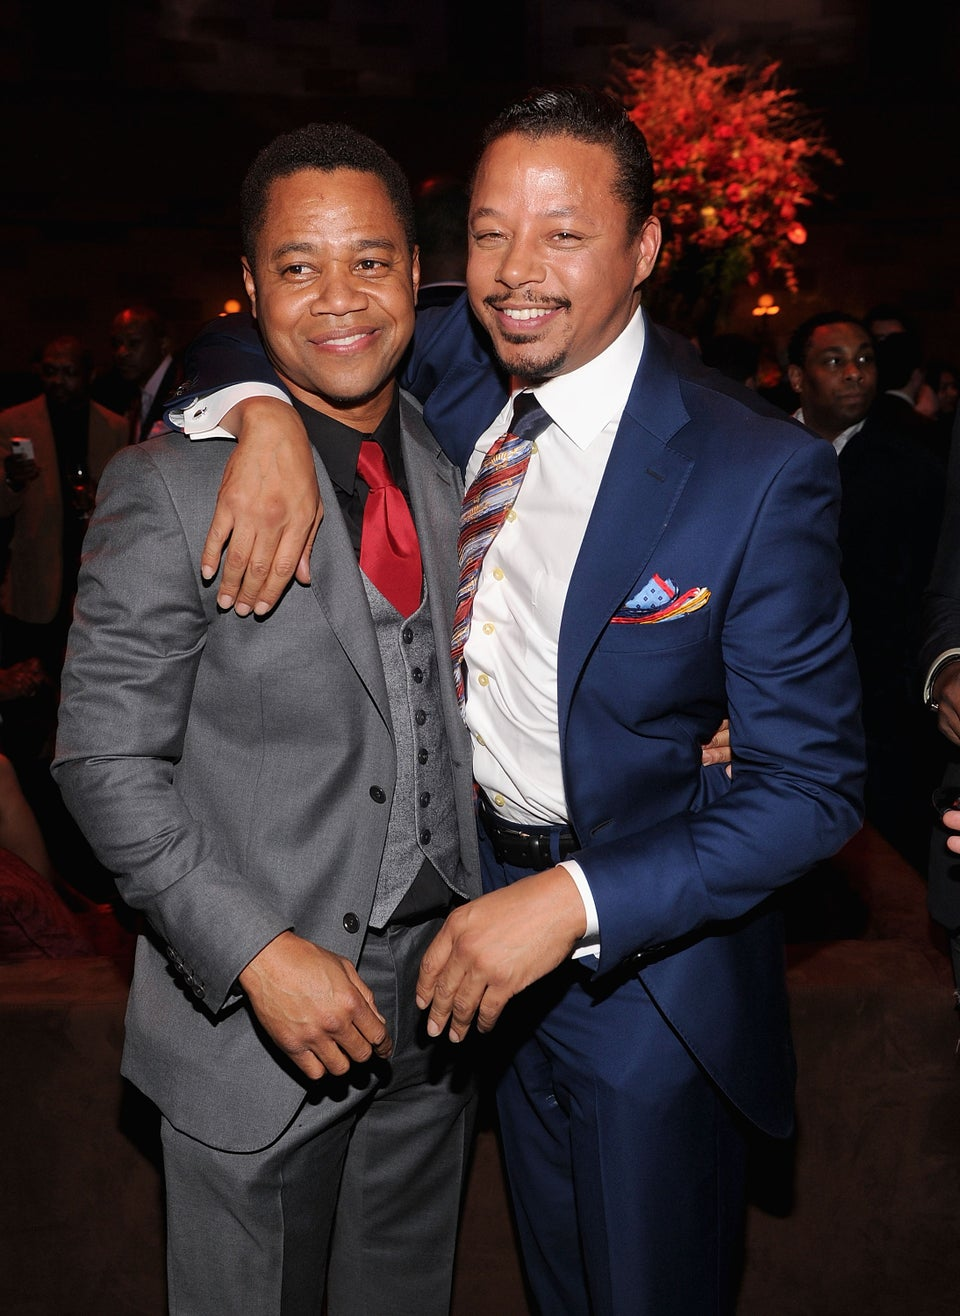 This Happened: The Emmys Mistook Terrence Howard For Cuba Gooding Jr. Even Though They Look Nothing Alike